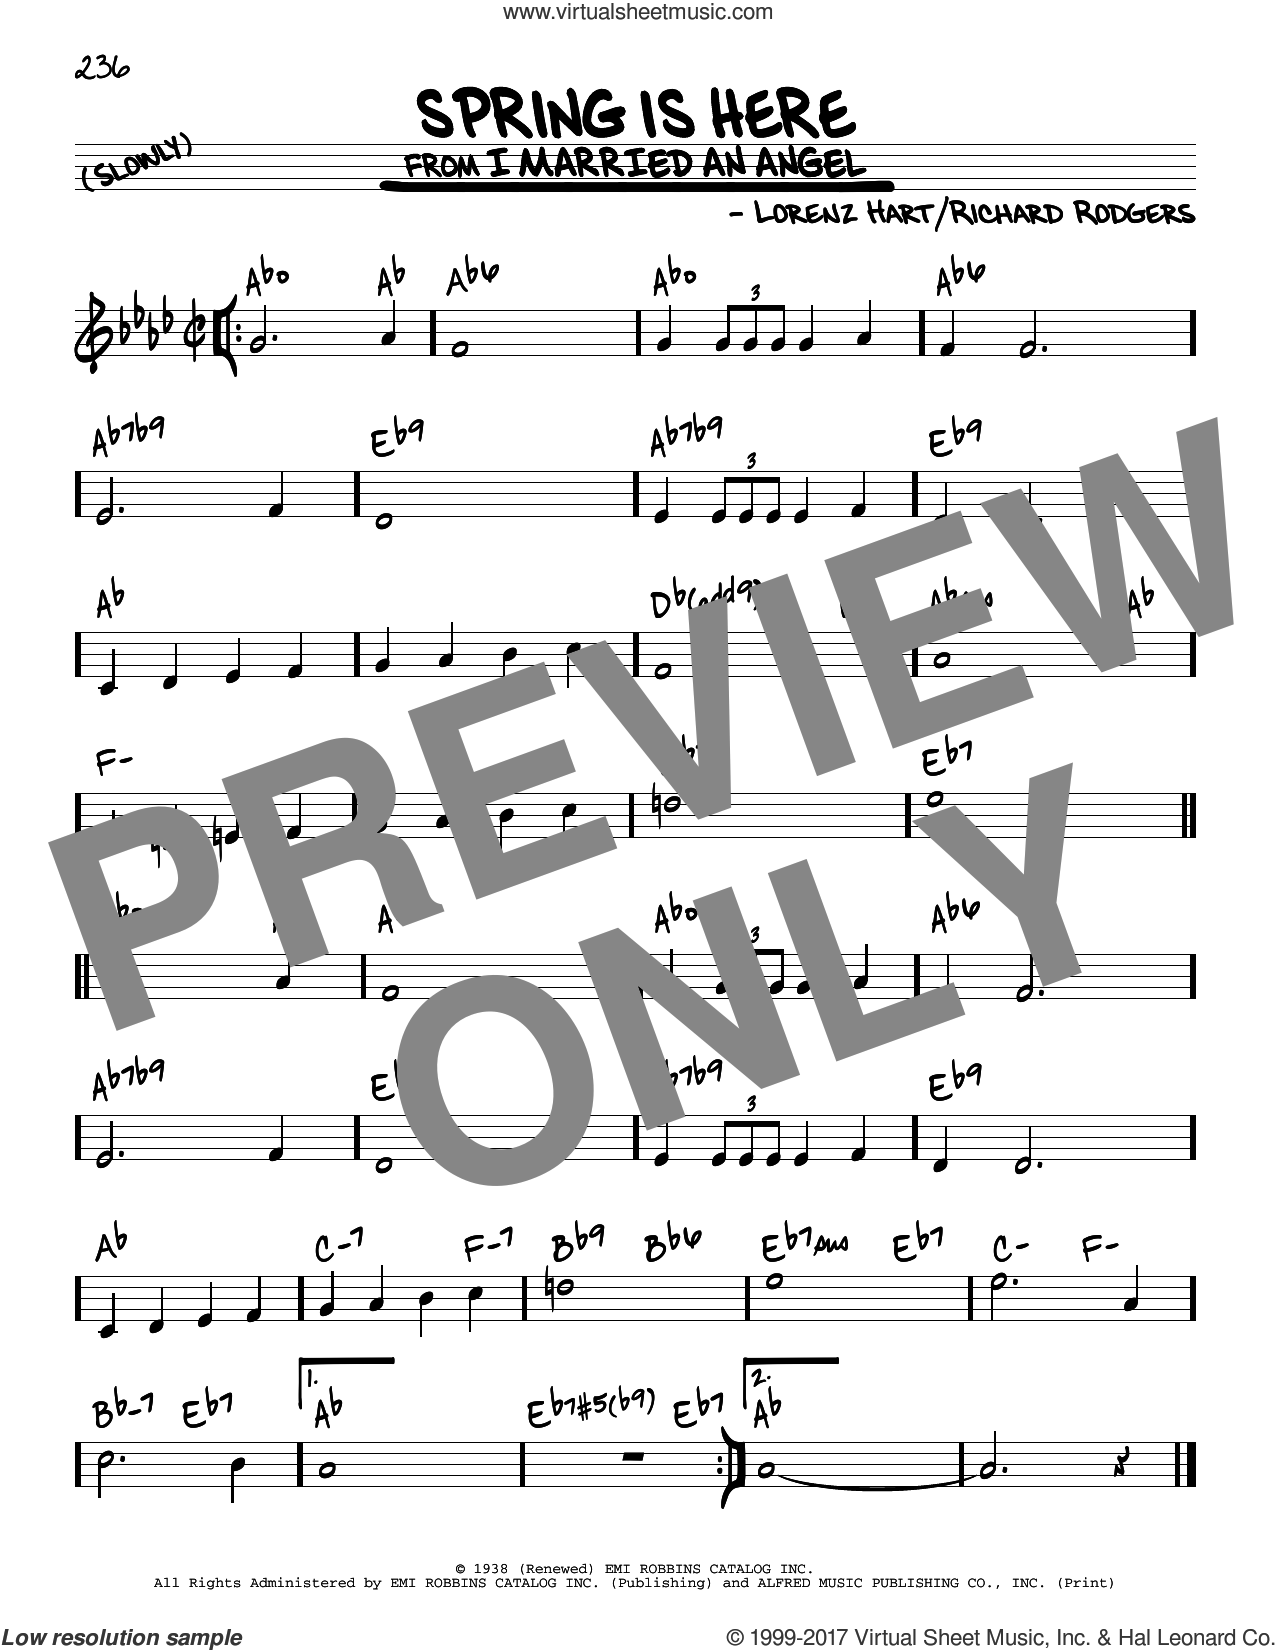 Spring Is Here sheet music for voice and other instruments (real book) by Rodgers & Hart, Lorenz Hart and Richard Rodgers, intermediate skill level